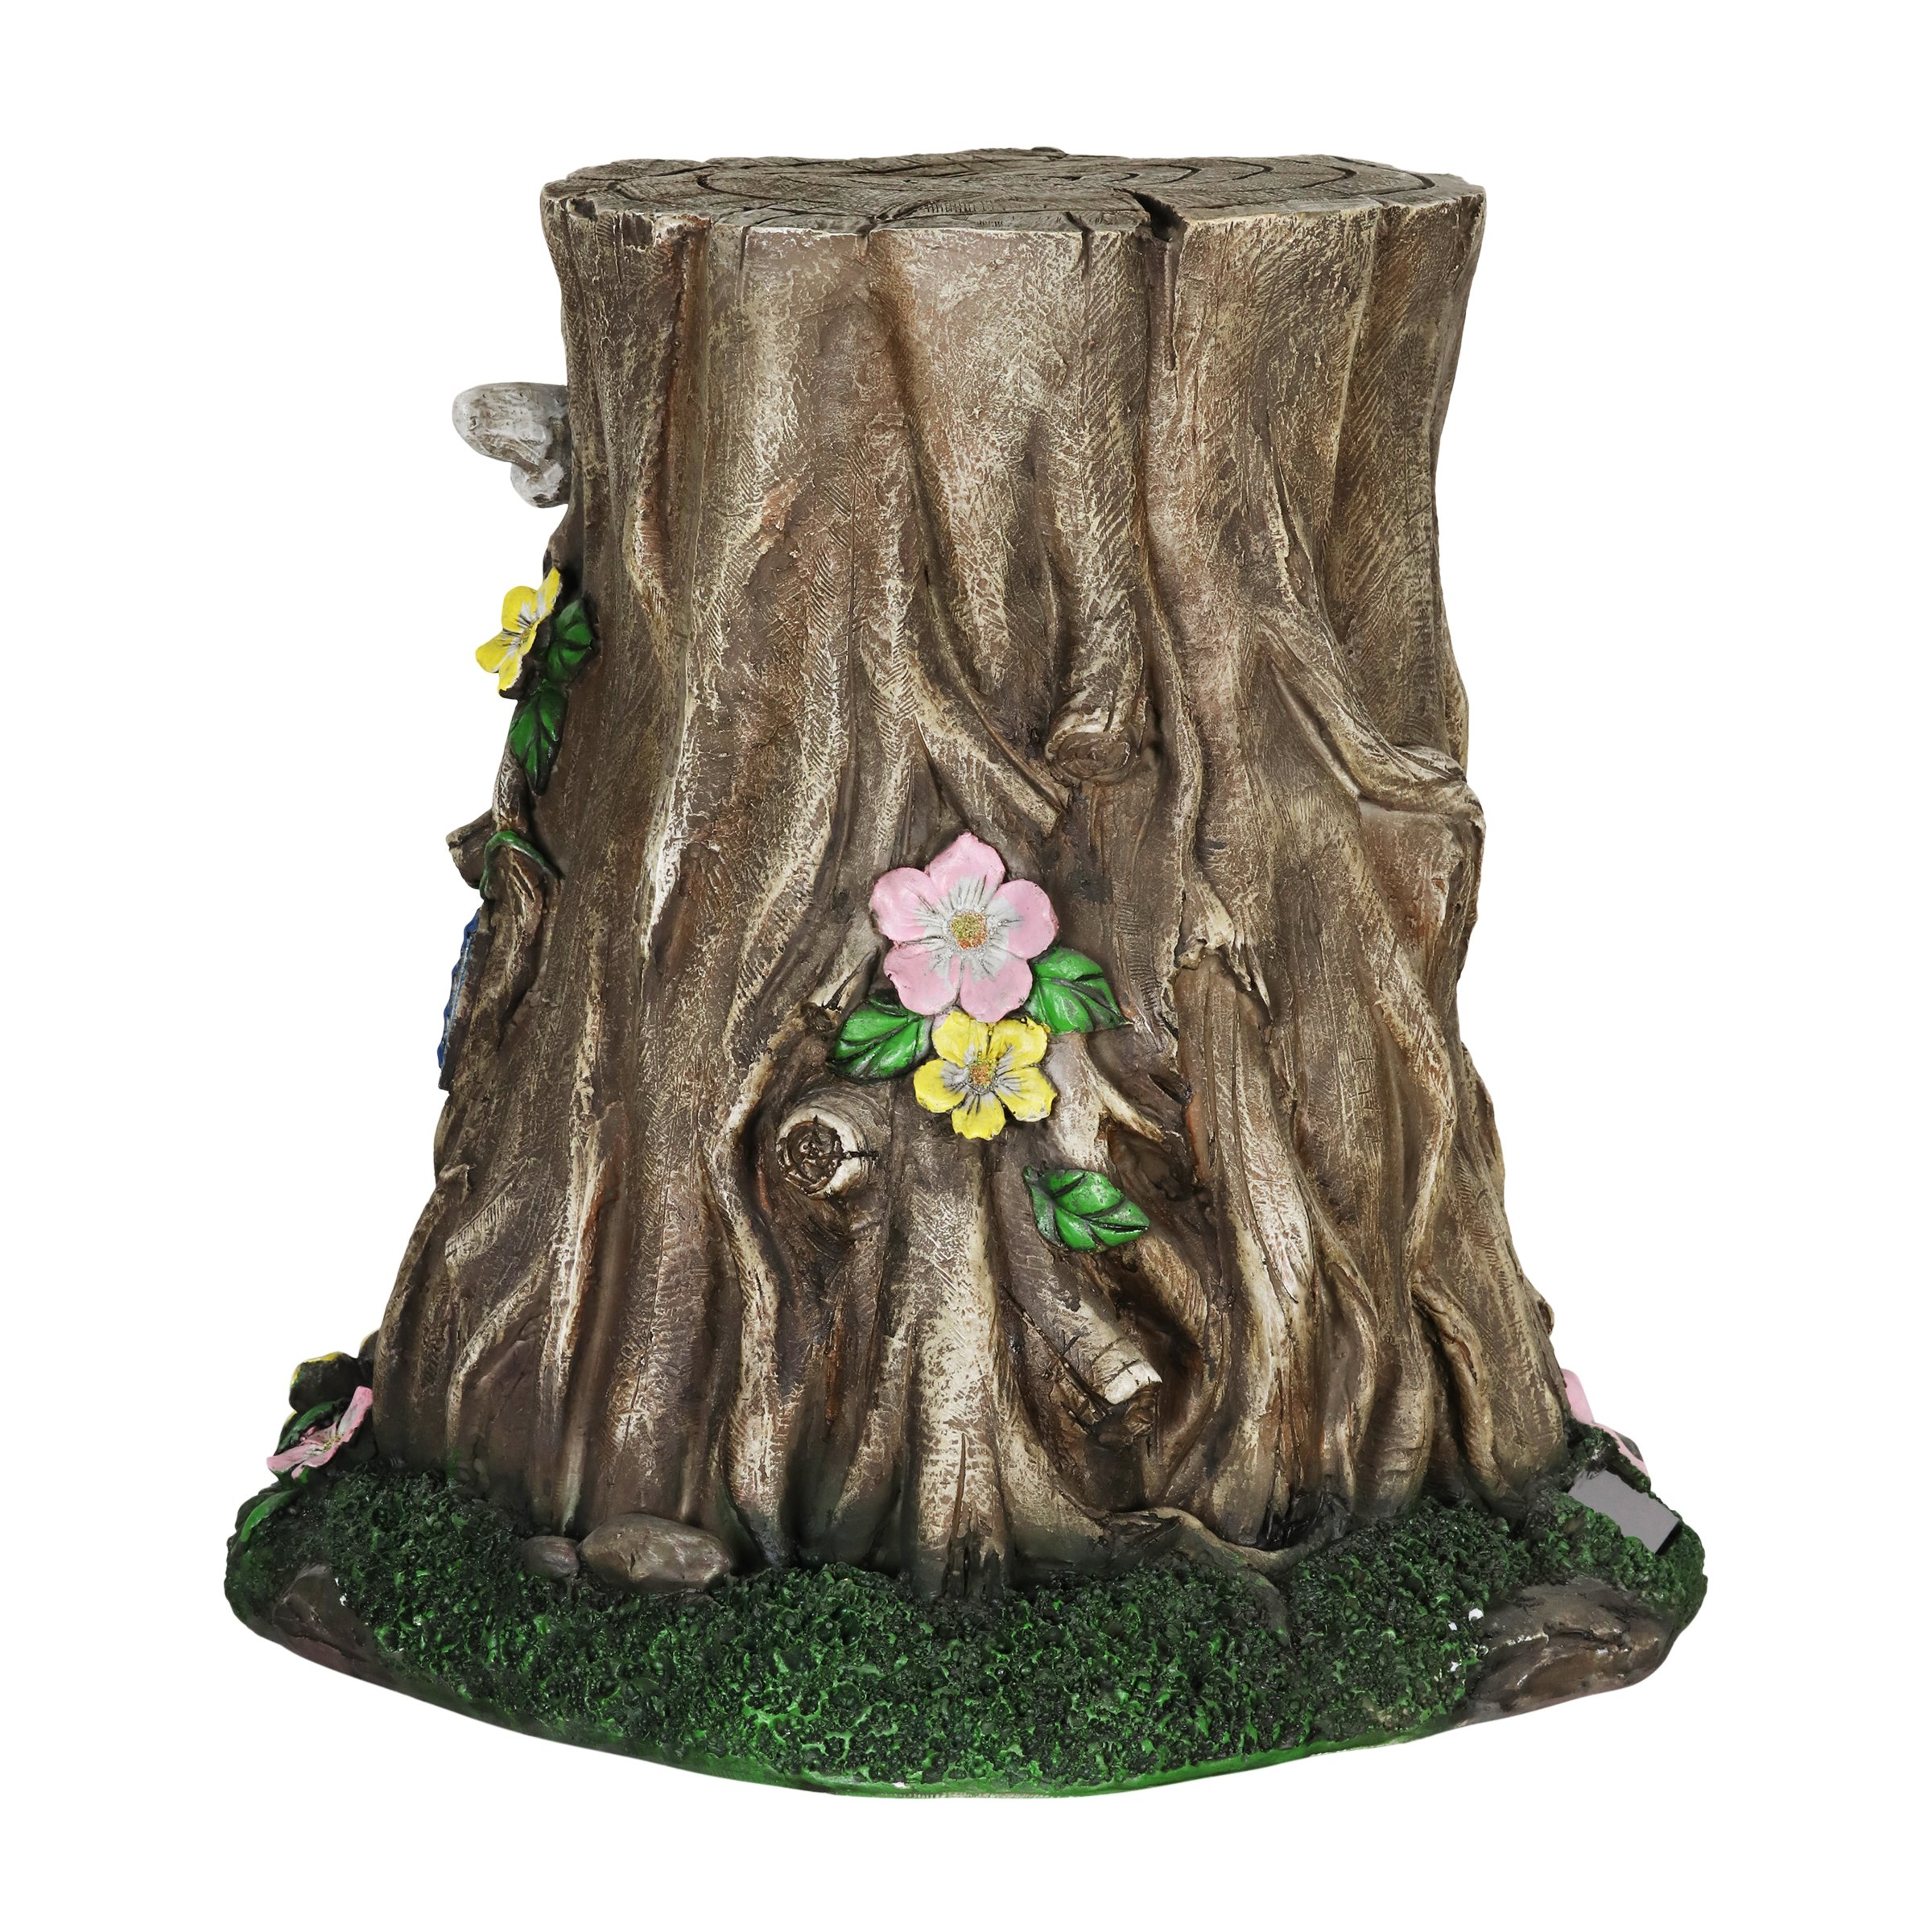 Exhart Gardening Gifts –Fairy House Tree Stump Statue - Large Garden Statues w/Solar Garden Lights, Outdoor Use, Fairy Themed Garden Décor, Weather Resistant Resin Statues by Exhart (Image #9)